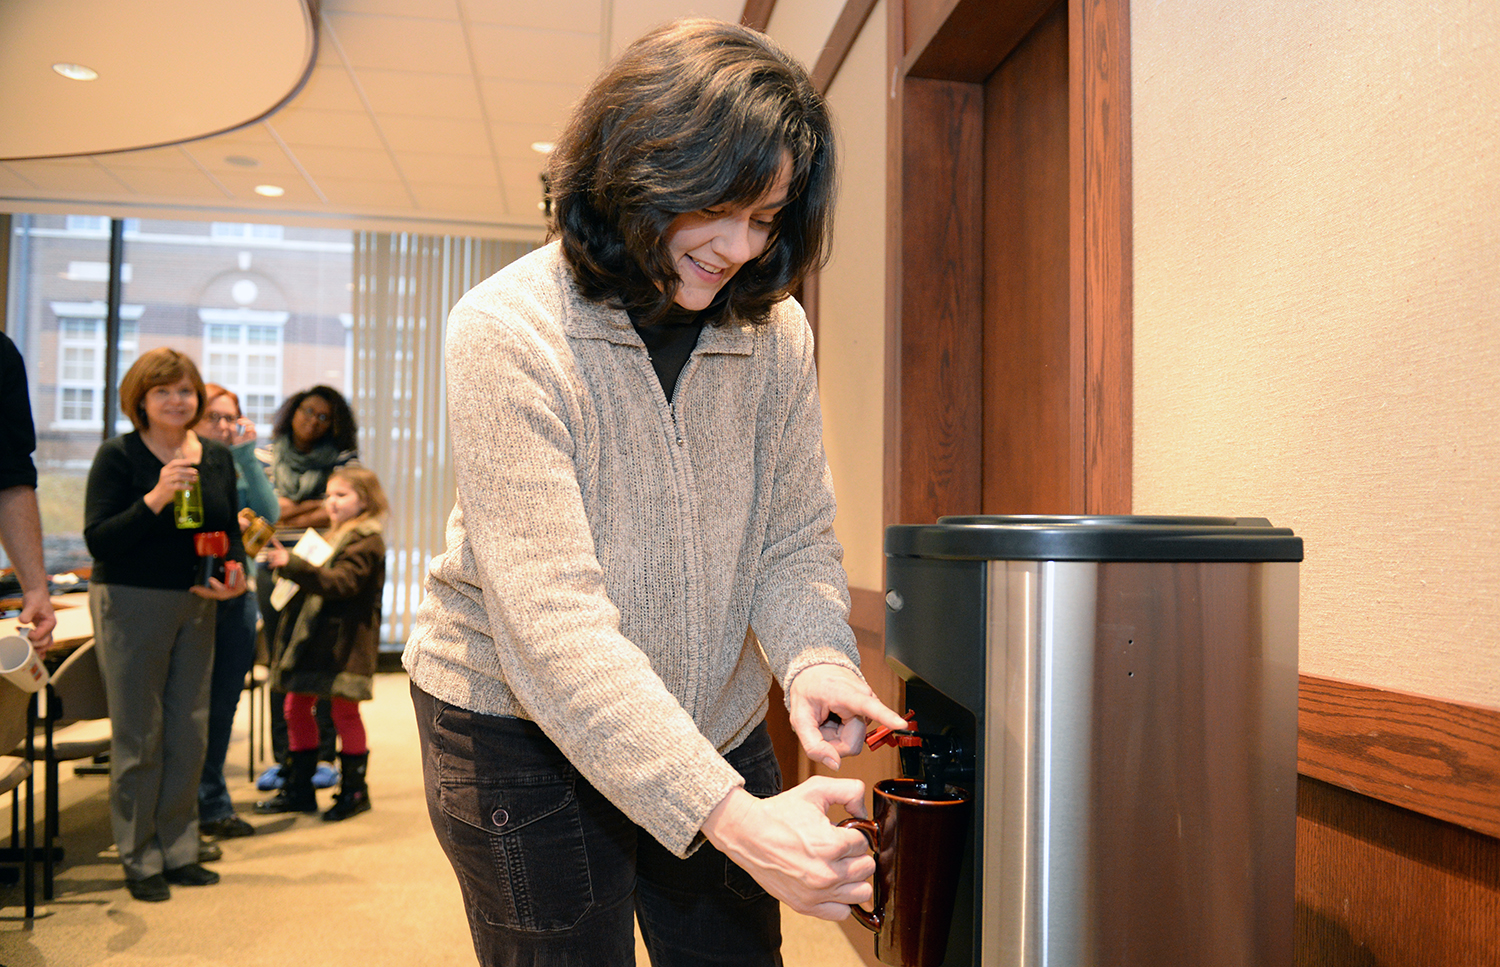 Dawn Alger, administrative assistant in the Theater Department, uses the new water filter. The system has an on/off switch in the rear to help save electricity when not in use.